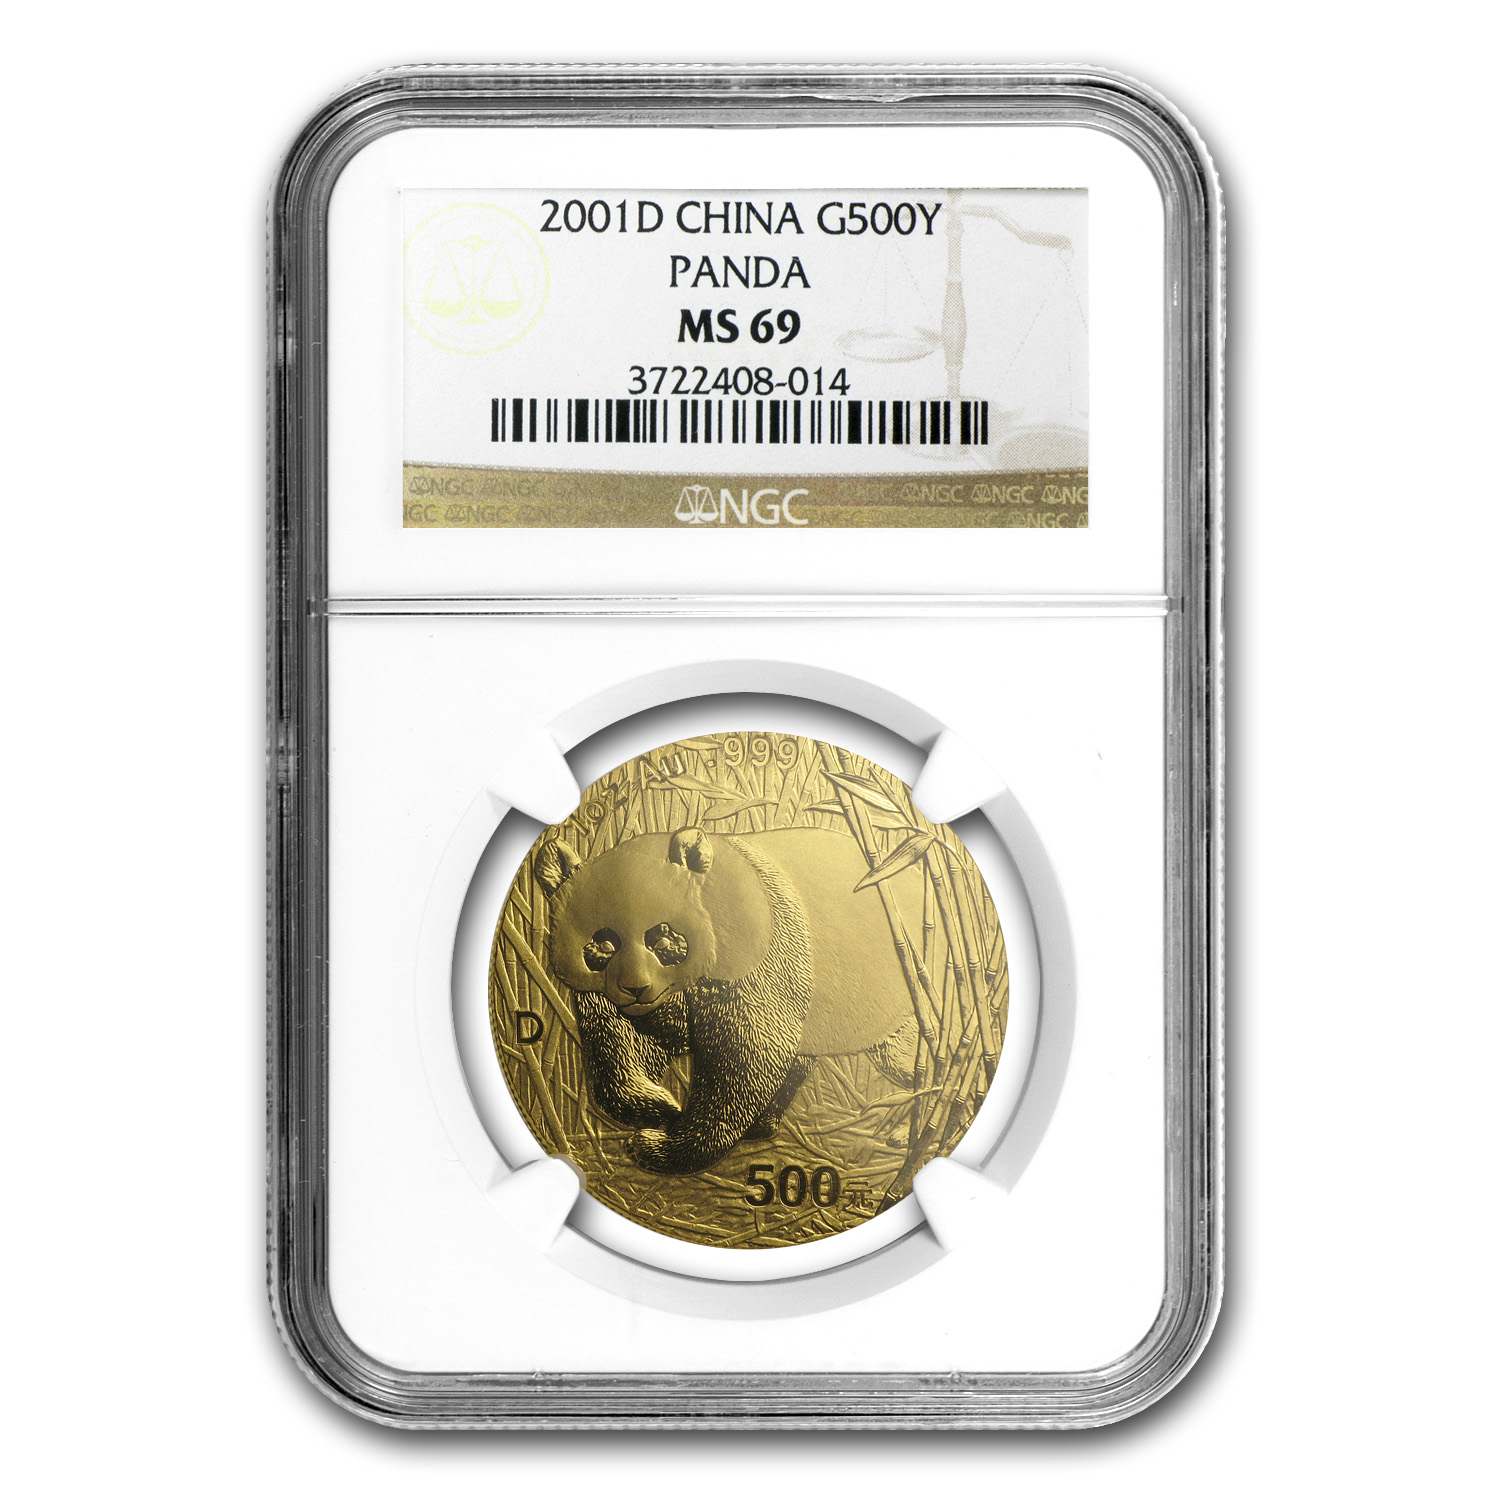 2001-D China 1 oz Gold Panda MS-69 NGC